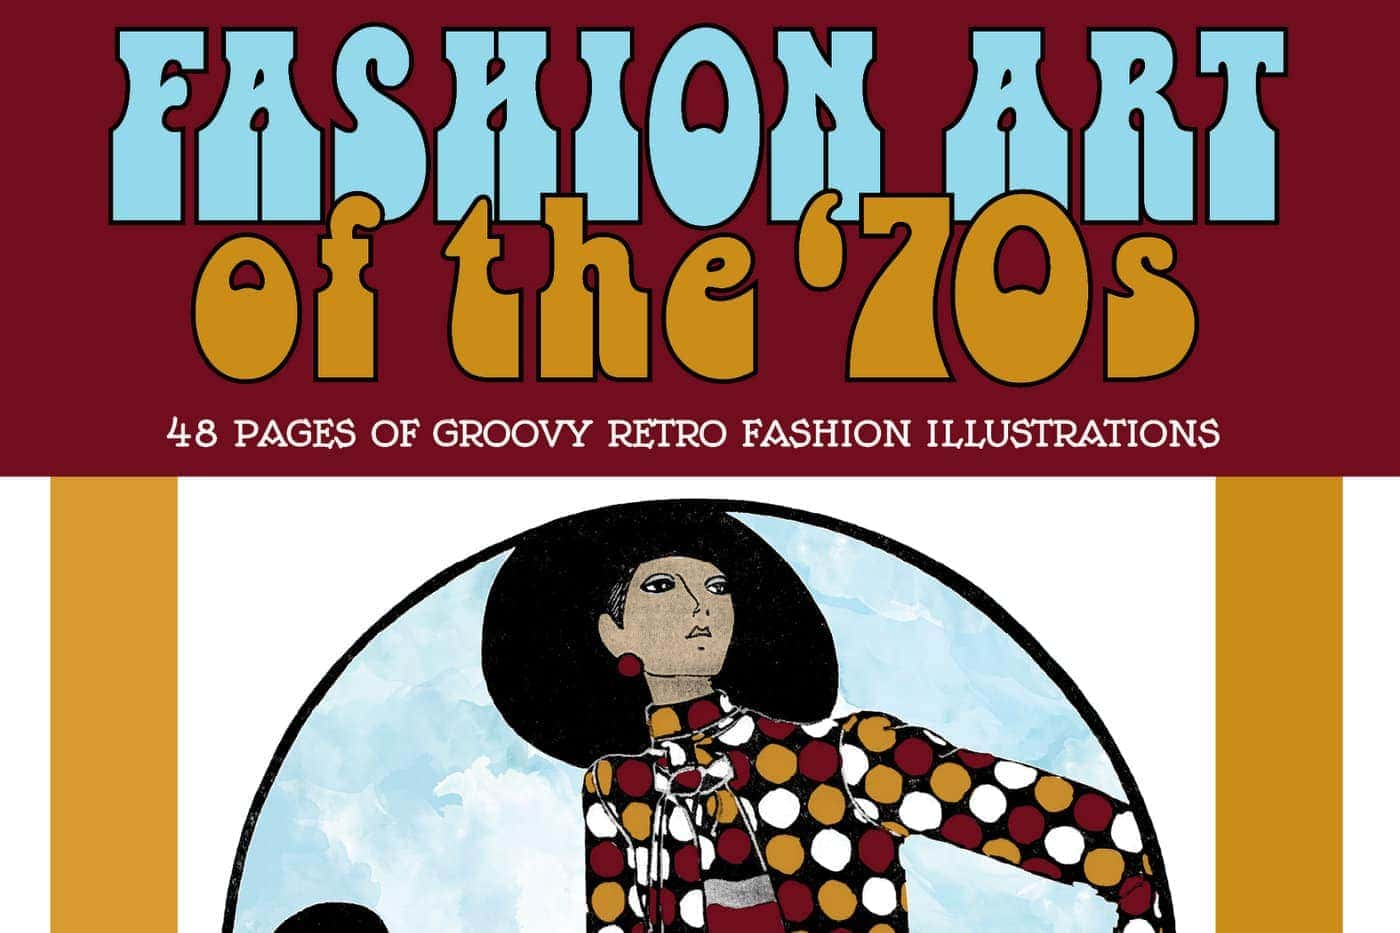 Vintage Women Coloring Book 9 Fashion Art of the '70s